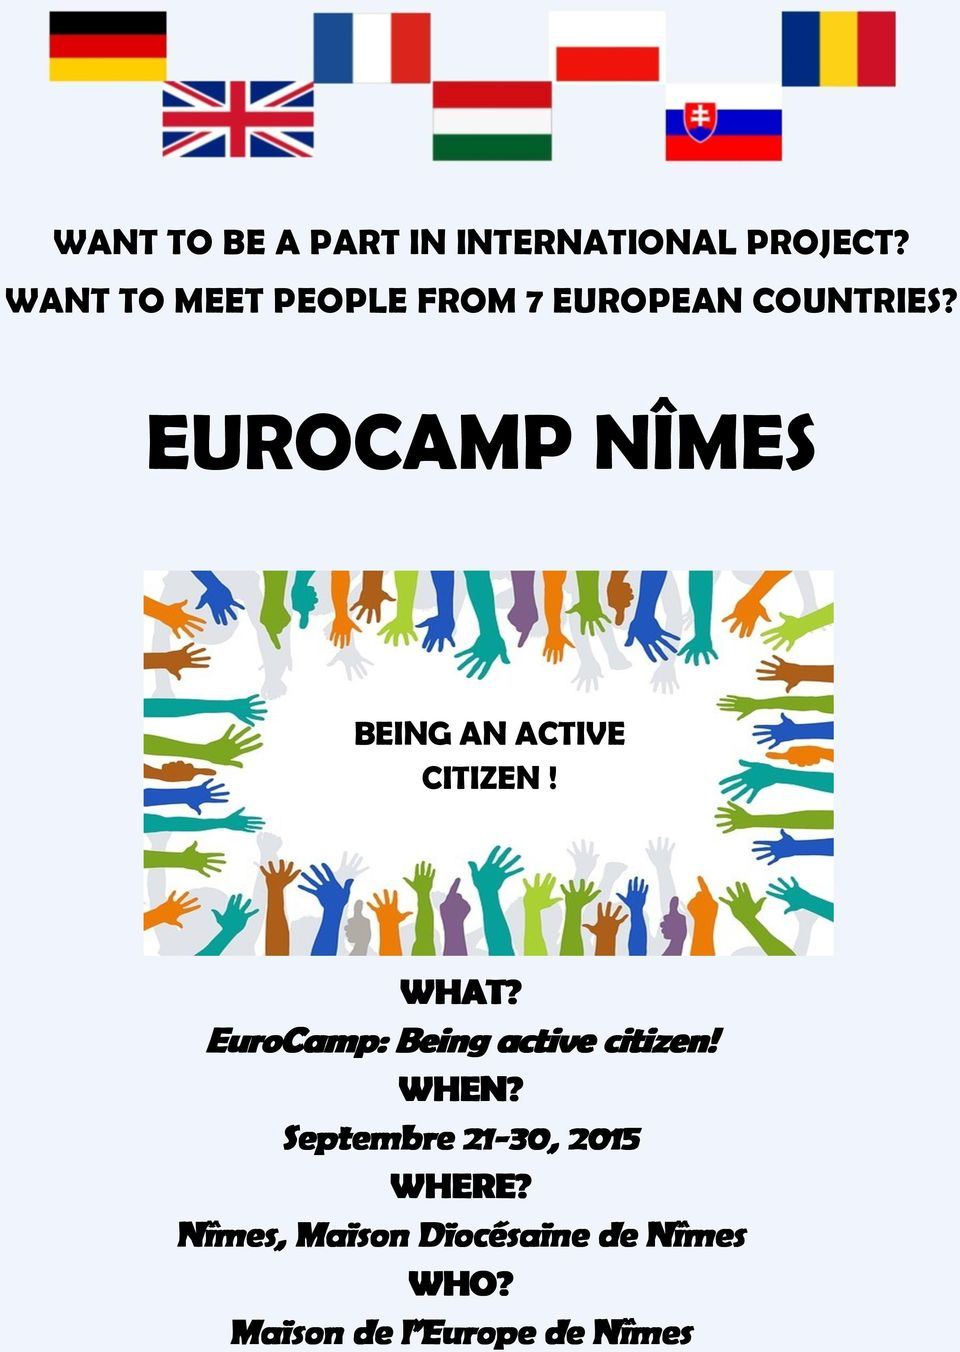 EUROCAMP NÎMES BEING AN ACTIVE CITIZEN! WHAT?